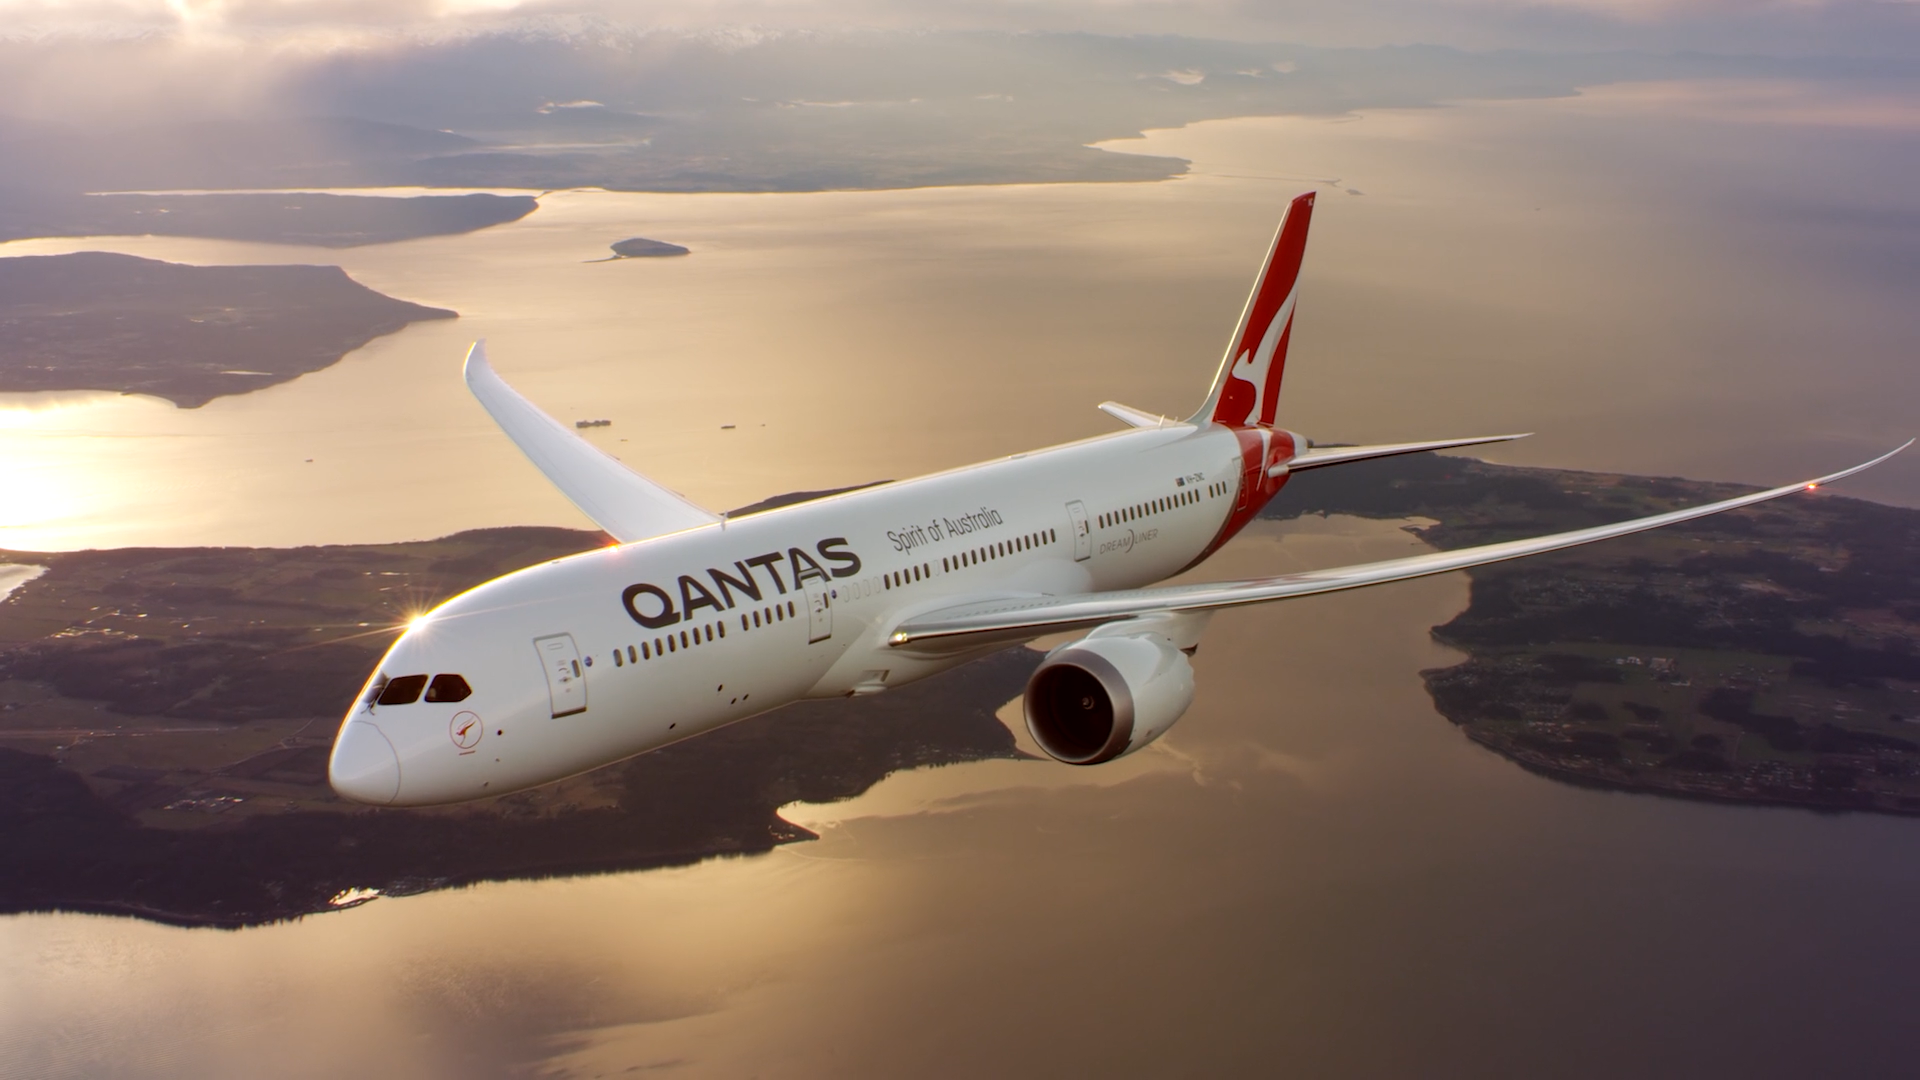 Qantas Dreamliner in the sky over Melbourne